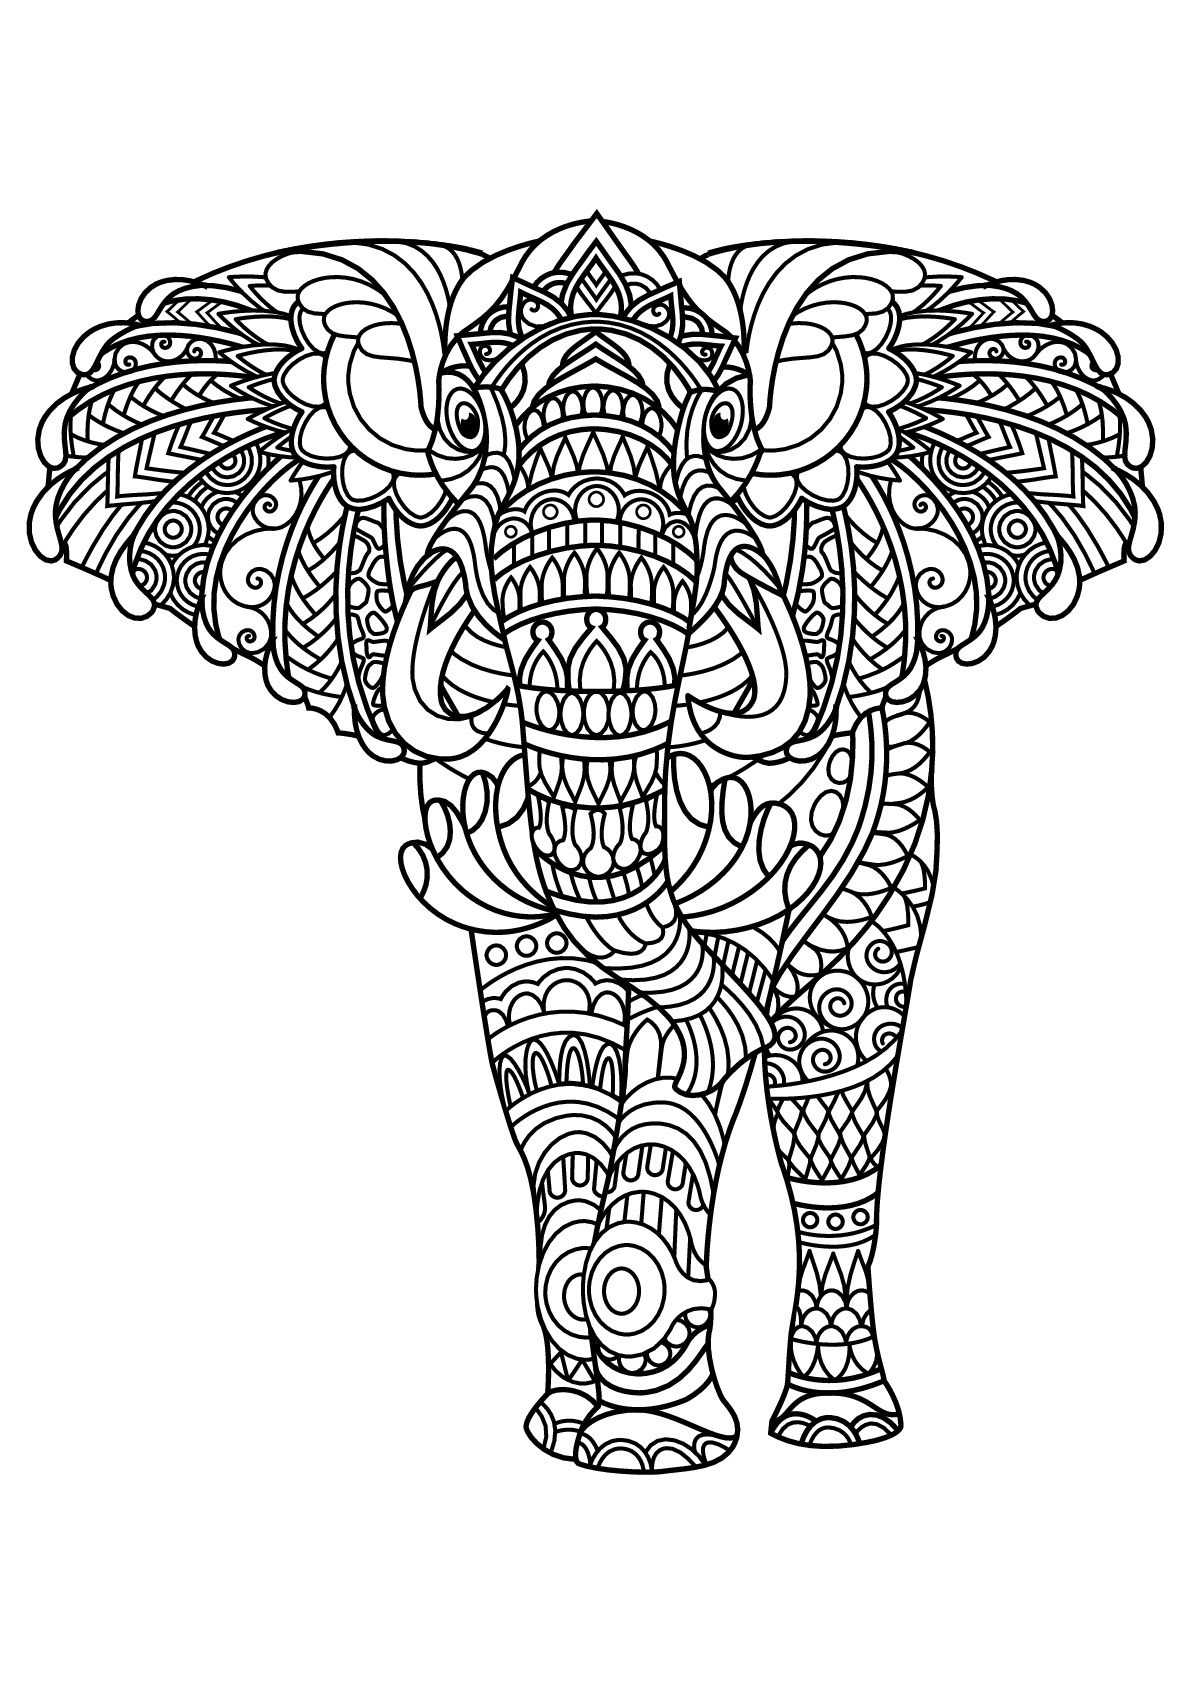 colouring pictures of elephant elephants to color for children elephants kids coloring of colouring pictures elephant